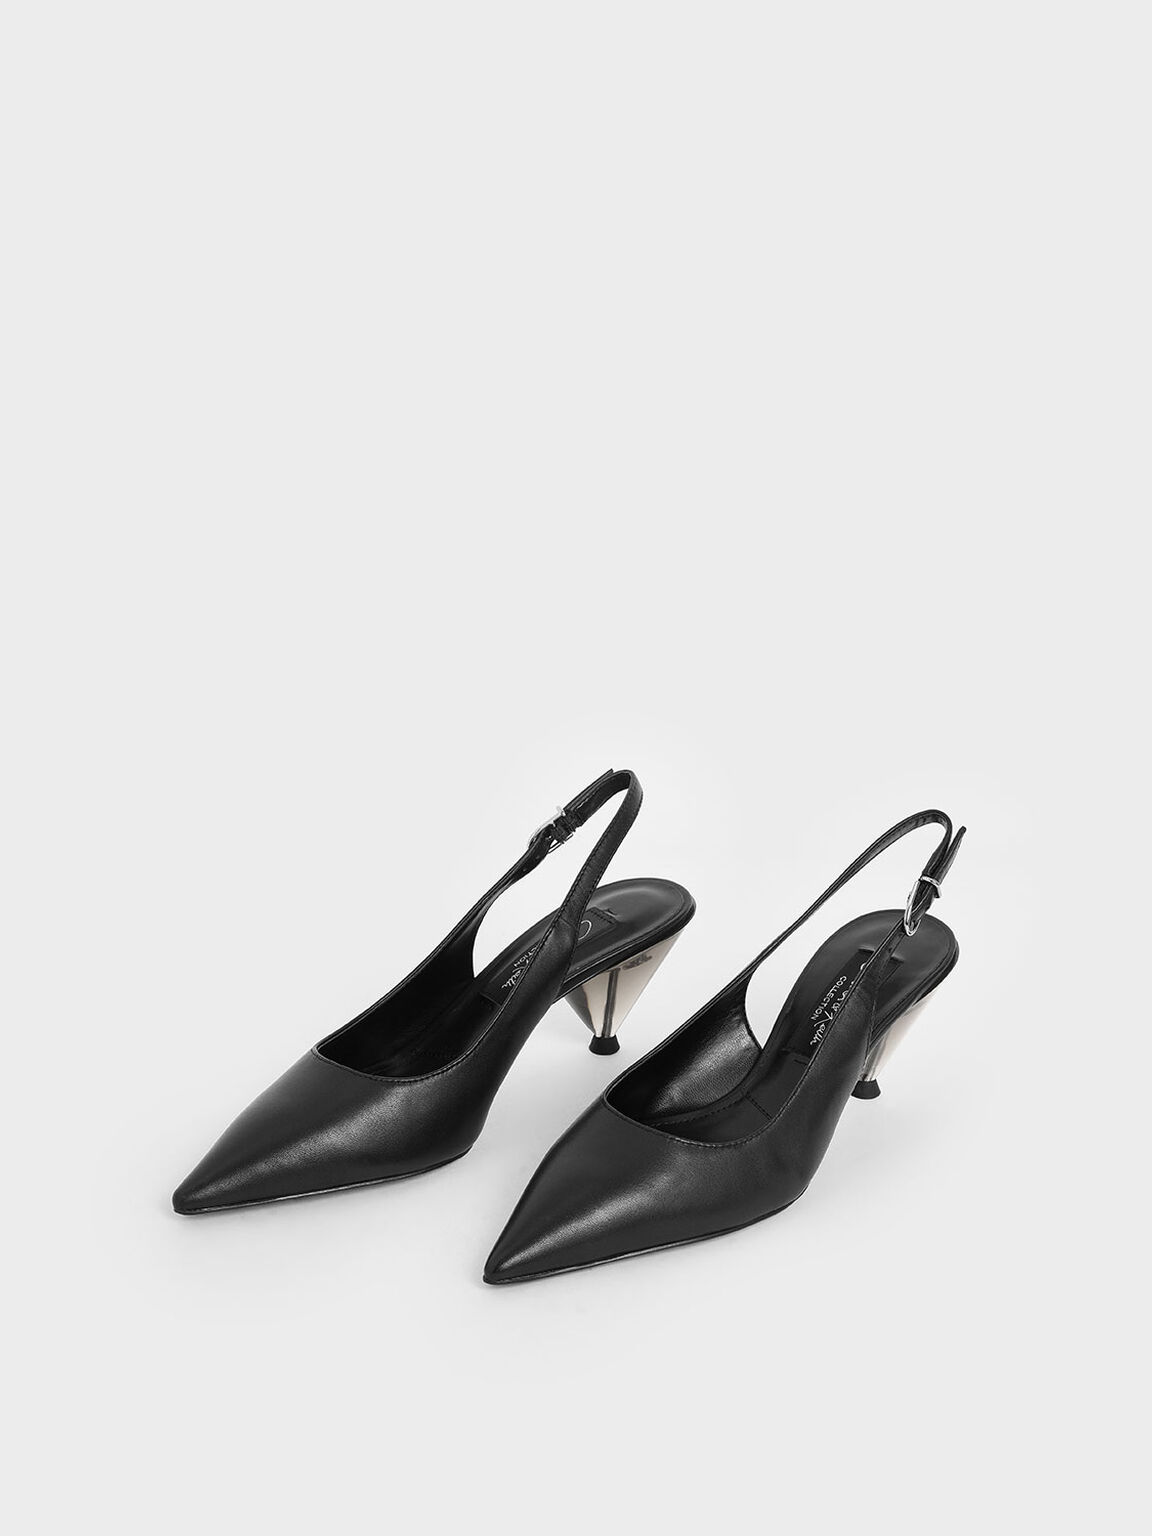 Leather Cone Heel Pumps, Black, hi-res